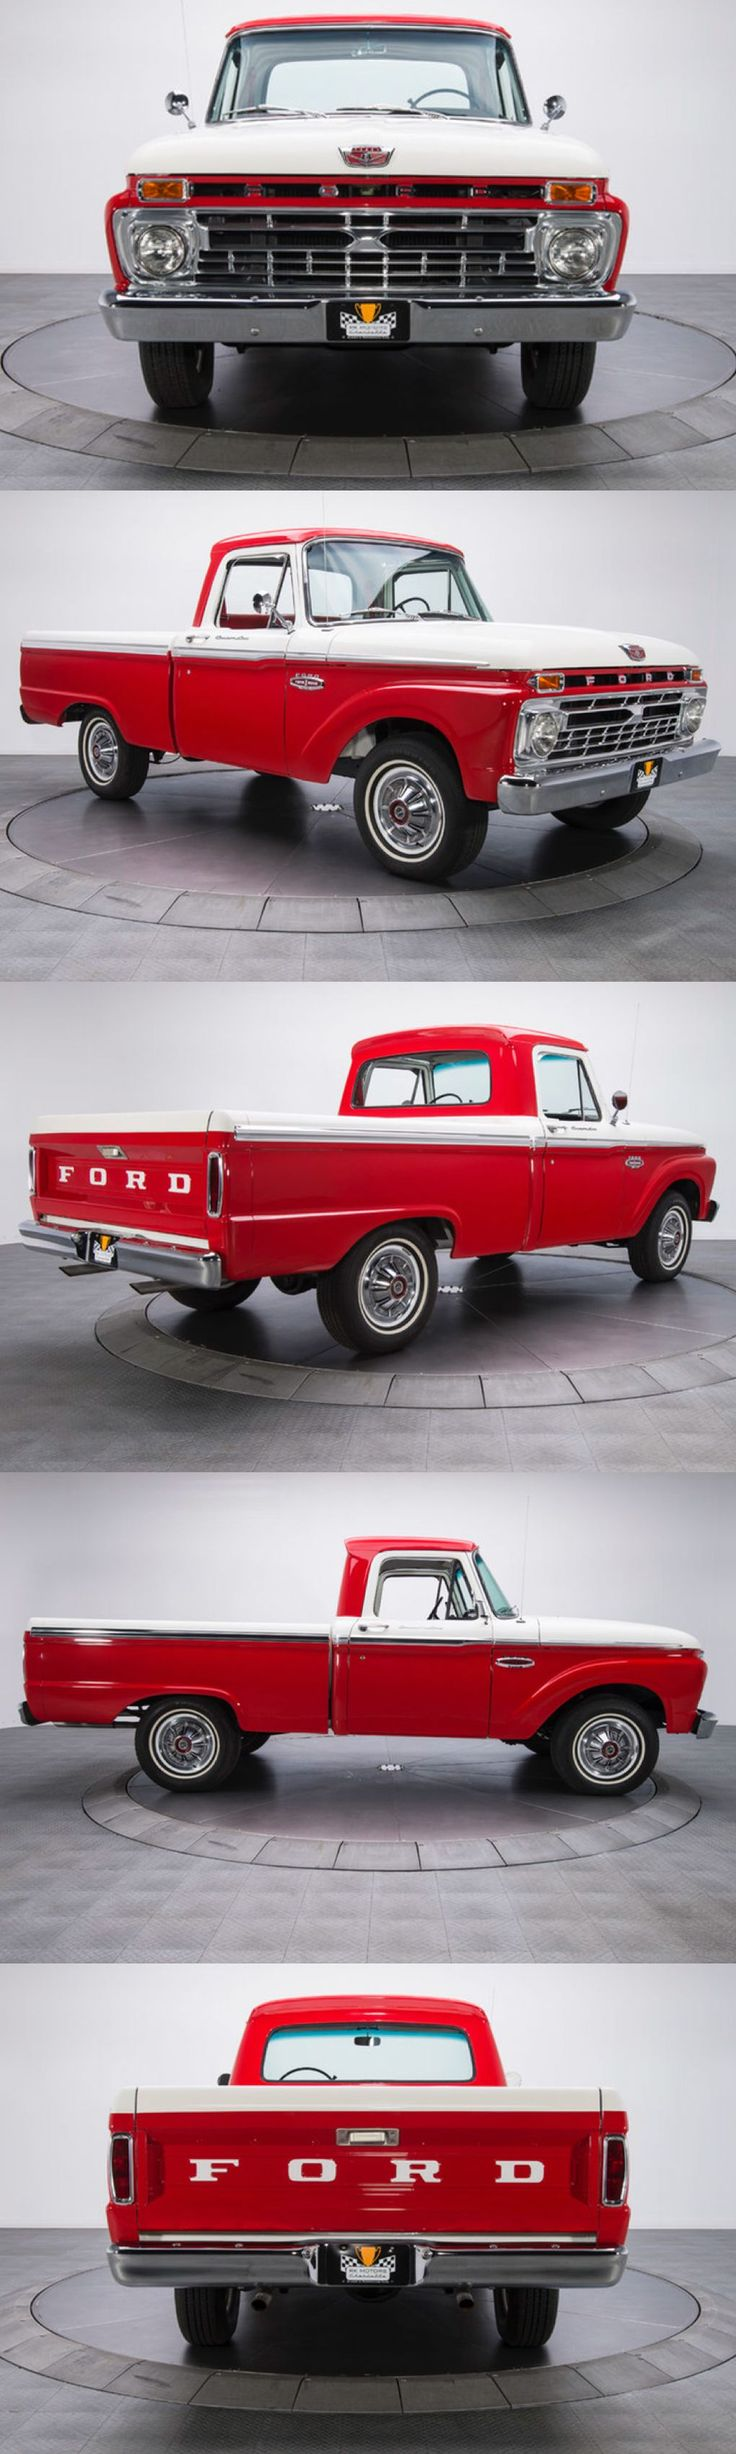 1966 Ford F100 pickup....Re-Pin brought to you by #CarInsuranceagents at #HouseofInsurance in #EugeneOregon